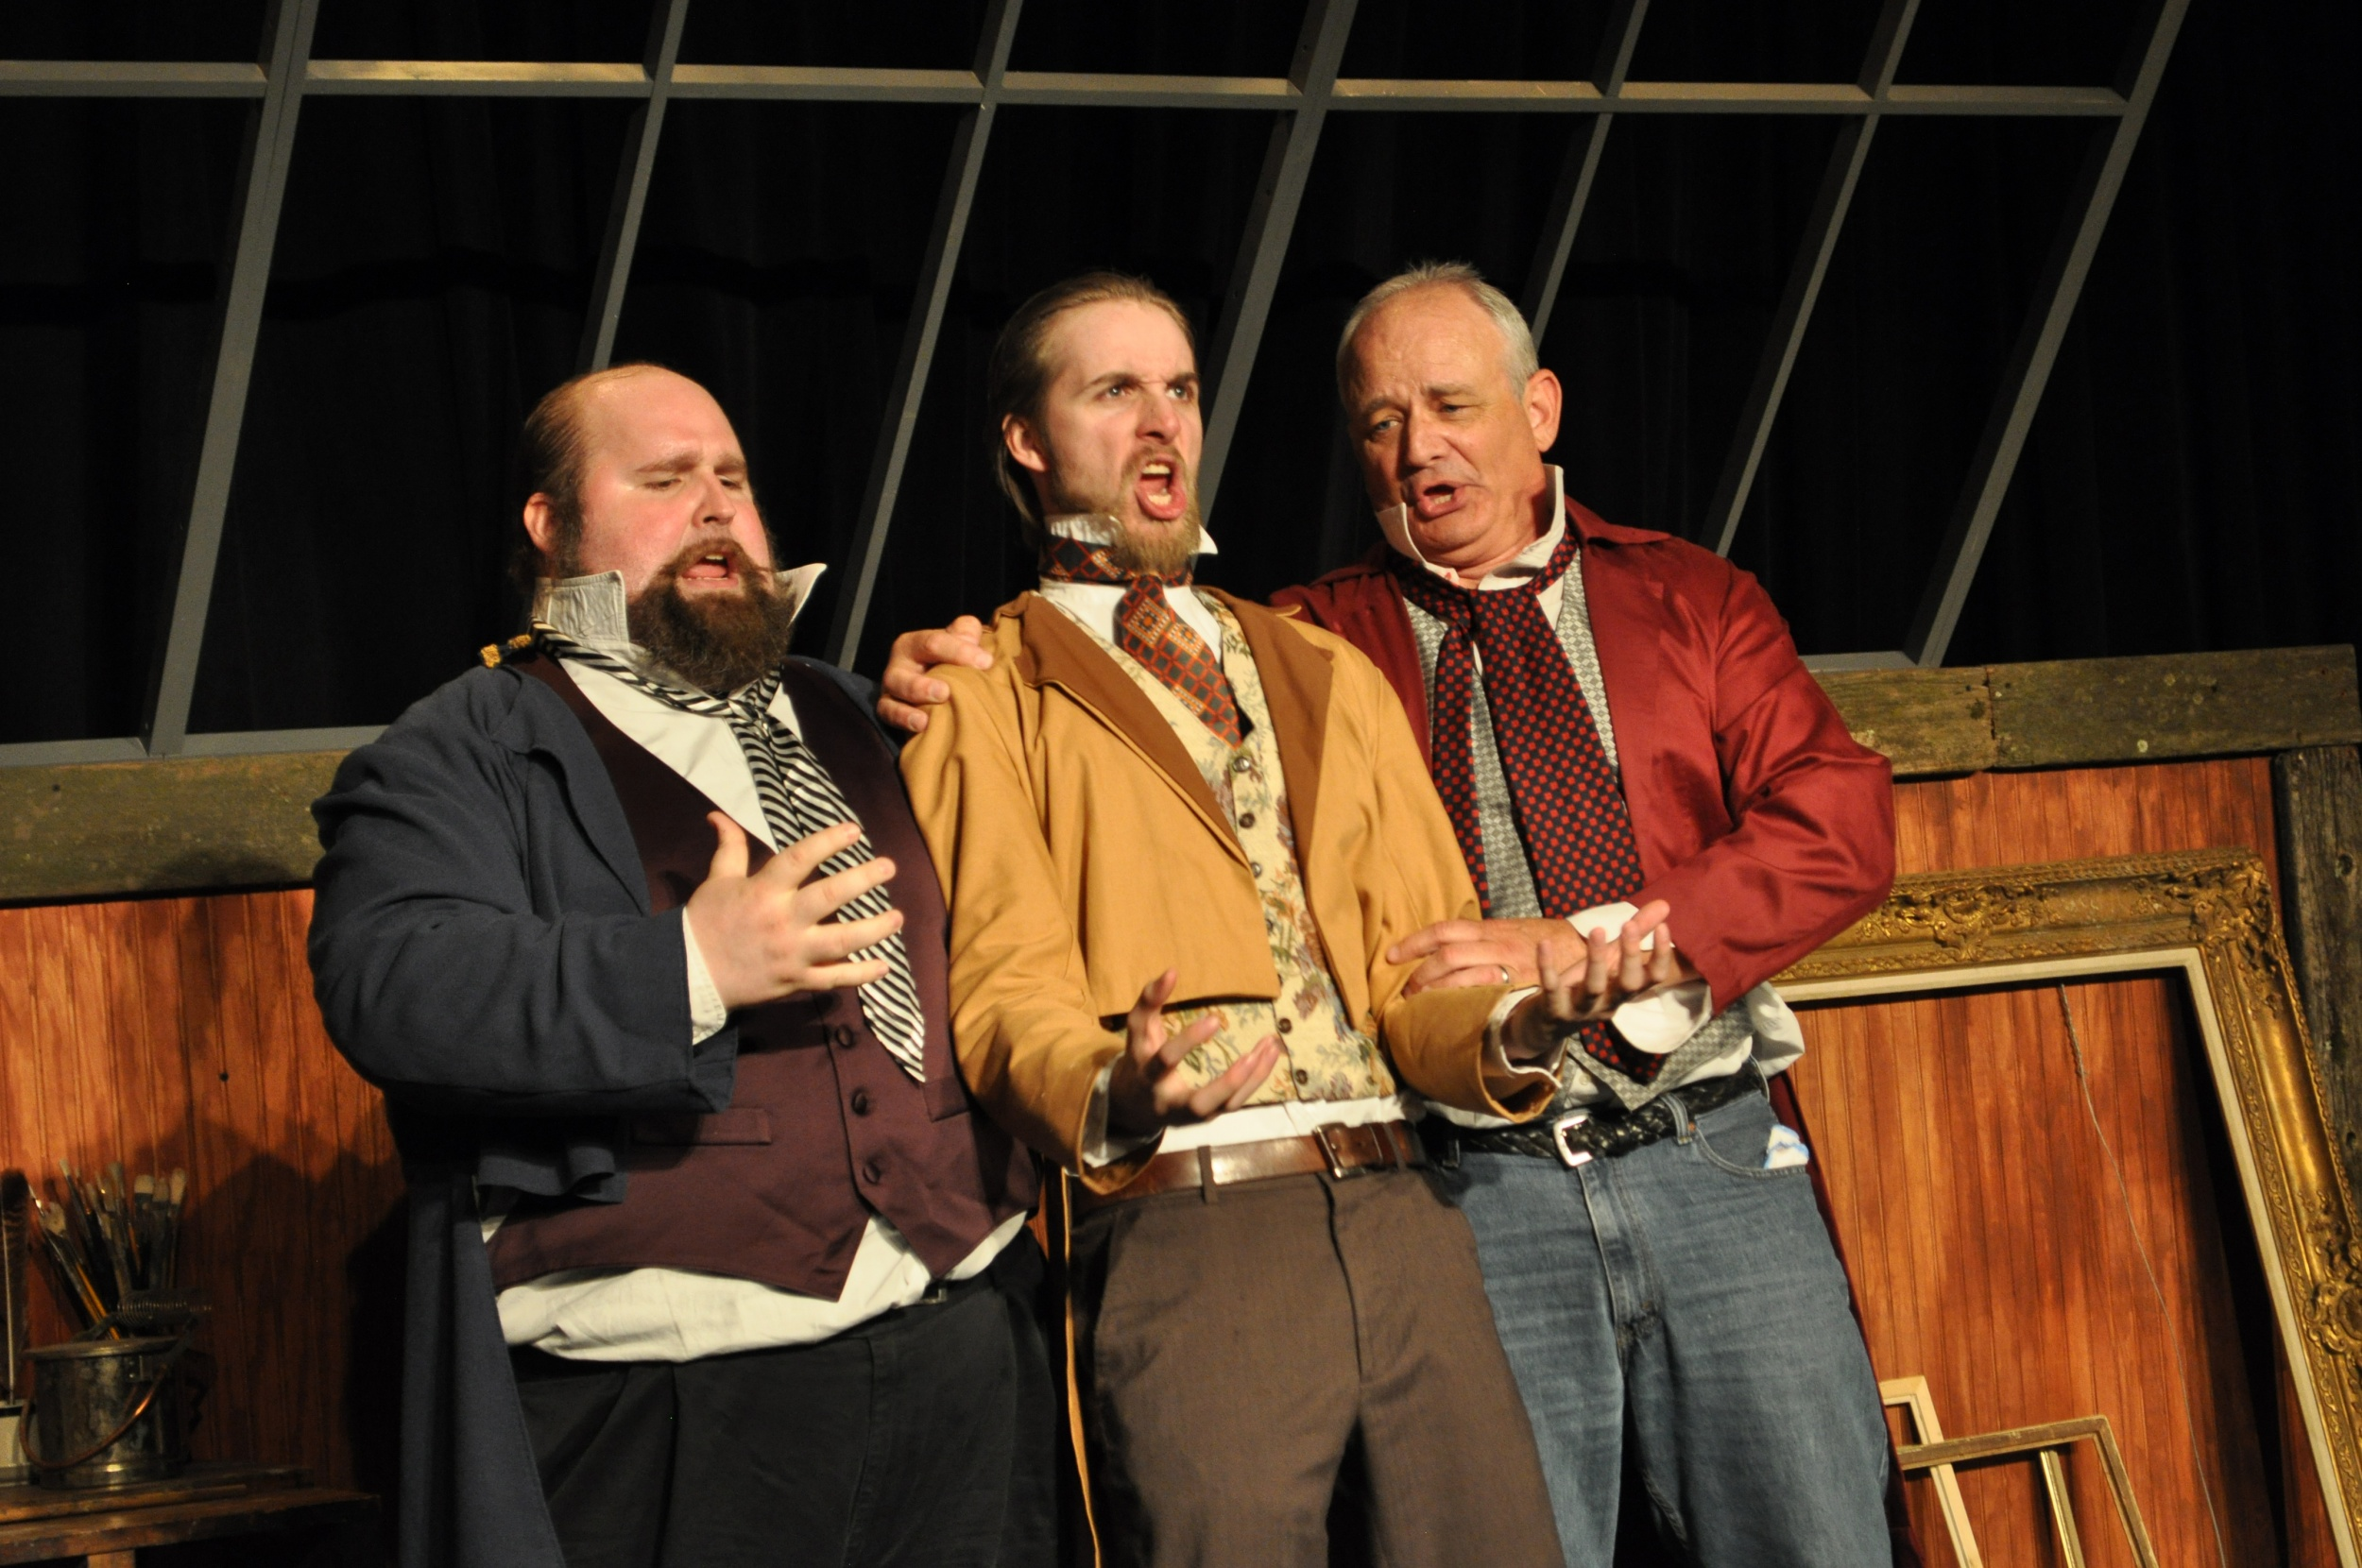 Twain created a circle of friends for Millet as wide as the United Nations. L to R: Thane Tuttle as Dutchy, Christopher Schwartz as O'Shaughnessy, and Craig Geoffrion as Chicago